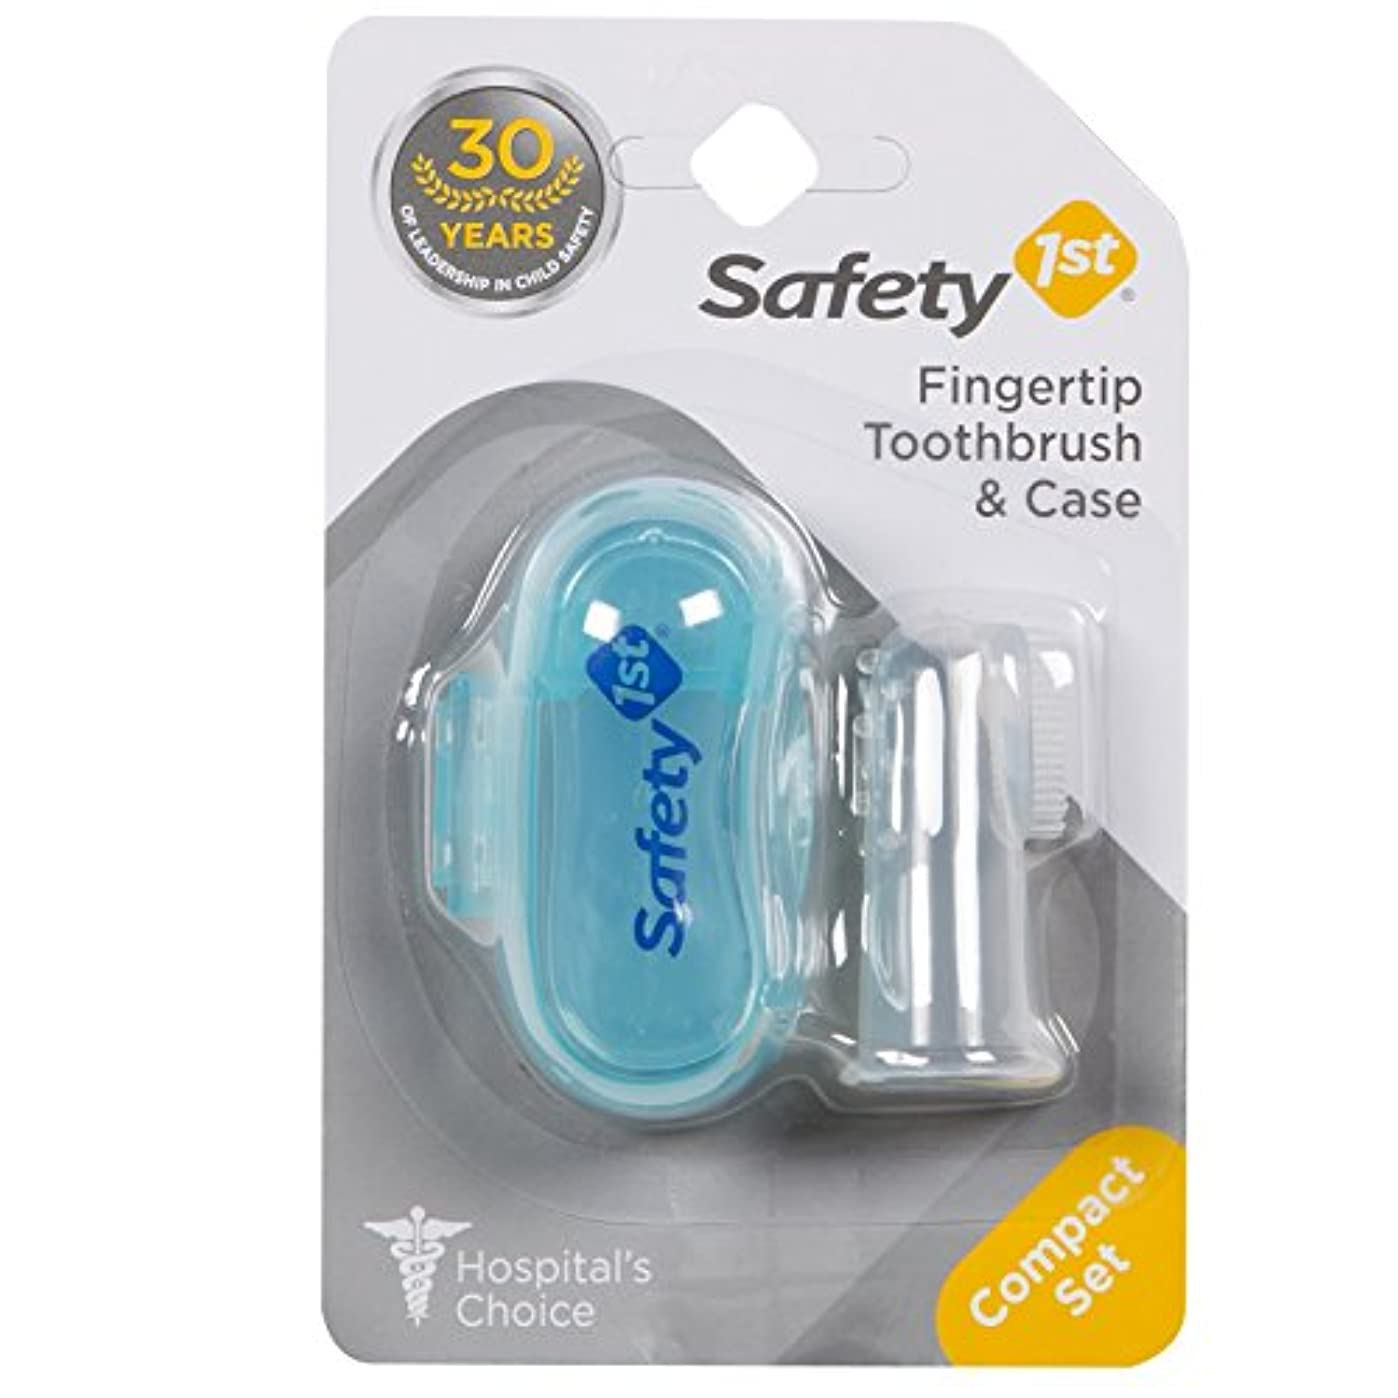 セクタアノイ思いやりのあるSafety 1st Fingertip Toothbrush and Case by Safety 1st